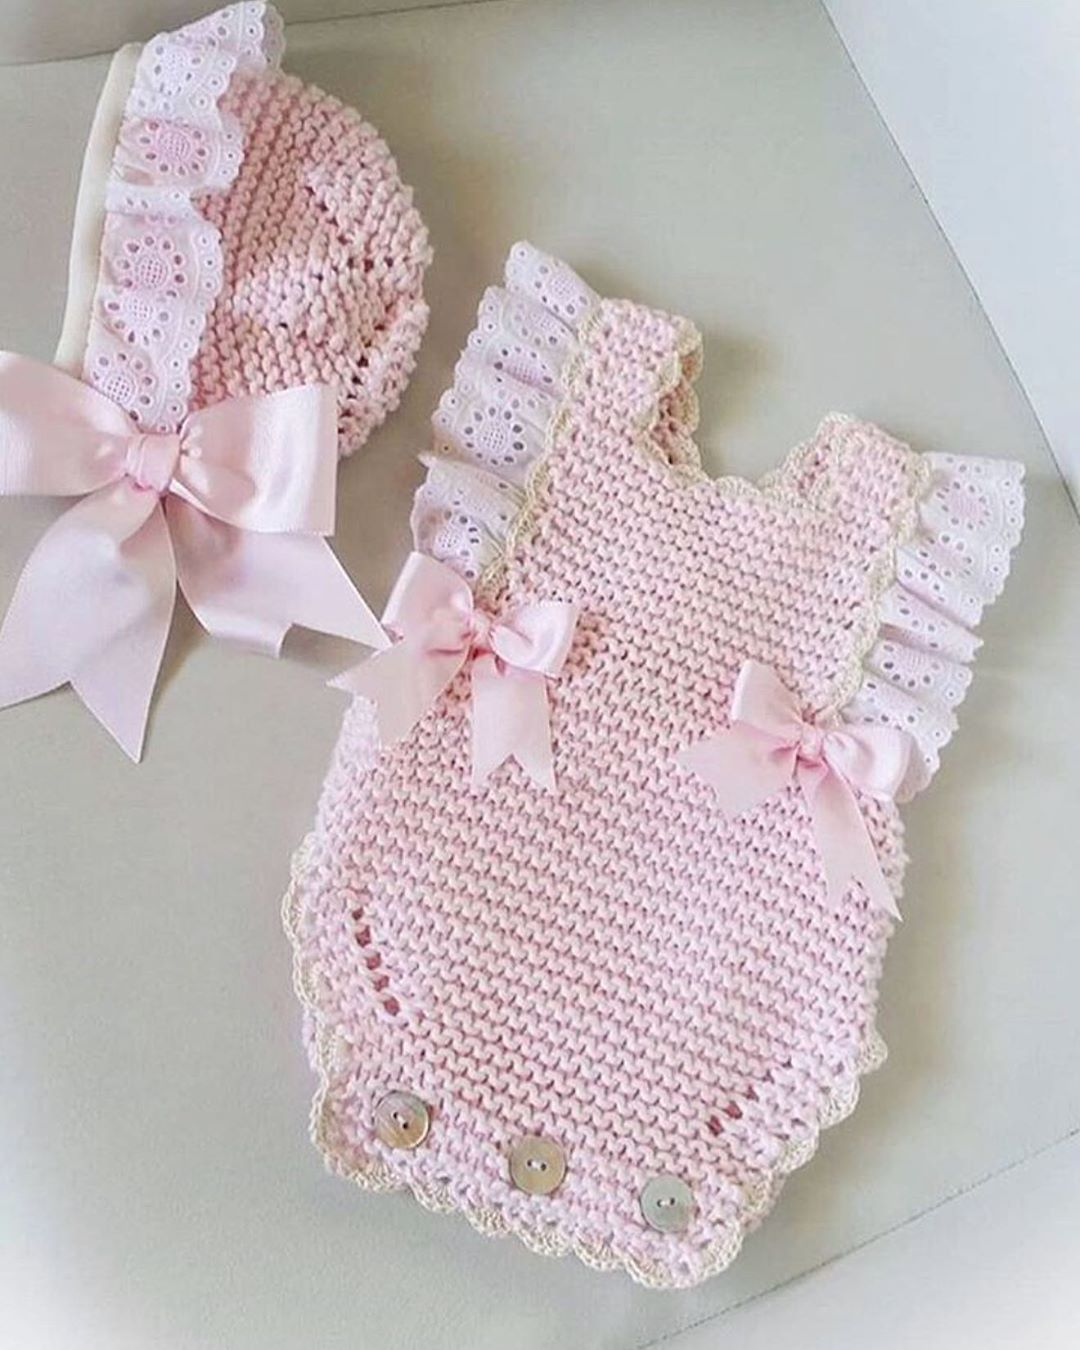 """Photo of MODA INFANTIL MADE IN SPAIN on Instagram: """"Belleza artesanal/ Beauty handmade by @charinni_baby 🌹🌹❤️❤️ Lovely 👉Únete a FAFTI SPAIN! FABRICANTES, FIRMAS y TIENDAS INFANTILES 👉…"""""""